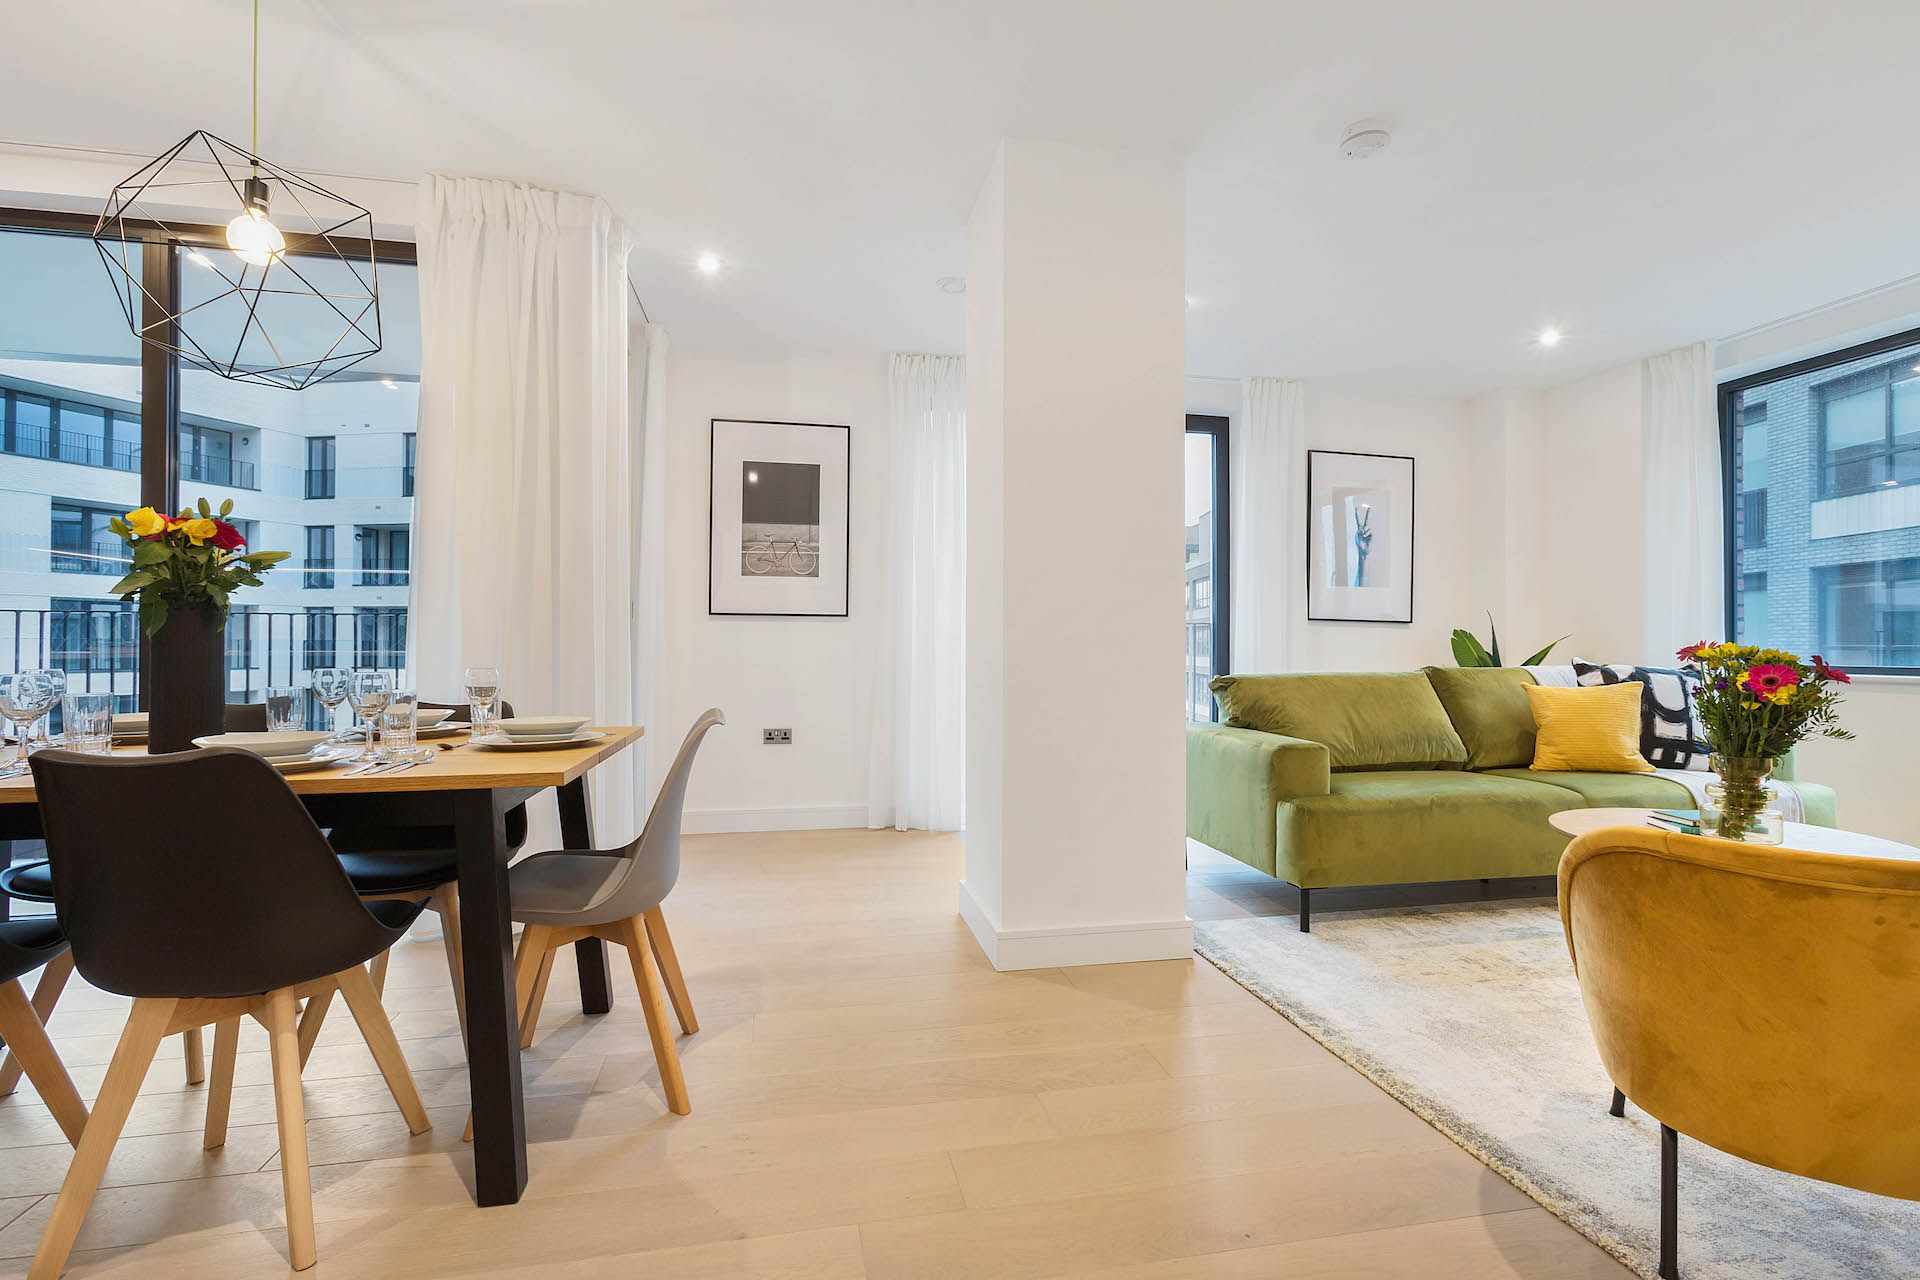 2 Bedroom apartment to rent in London SHO-RO-0033